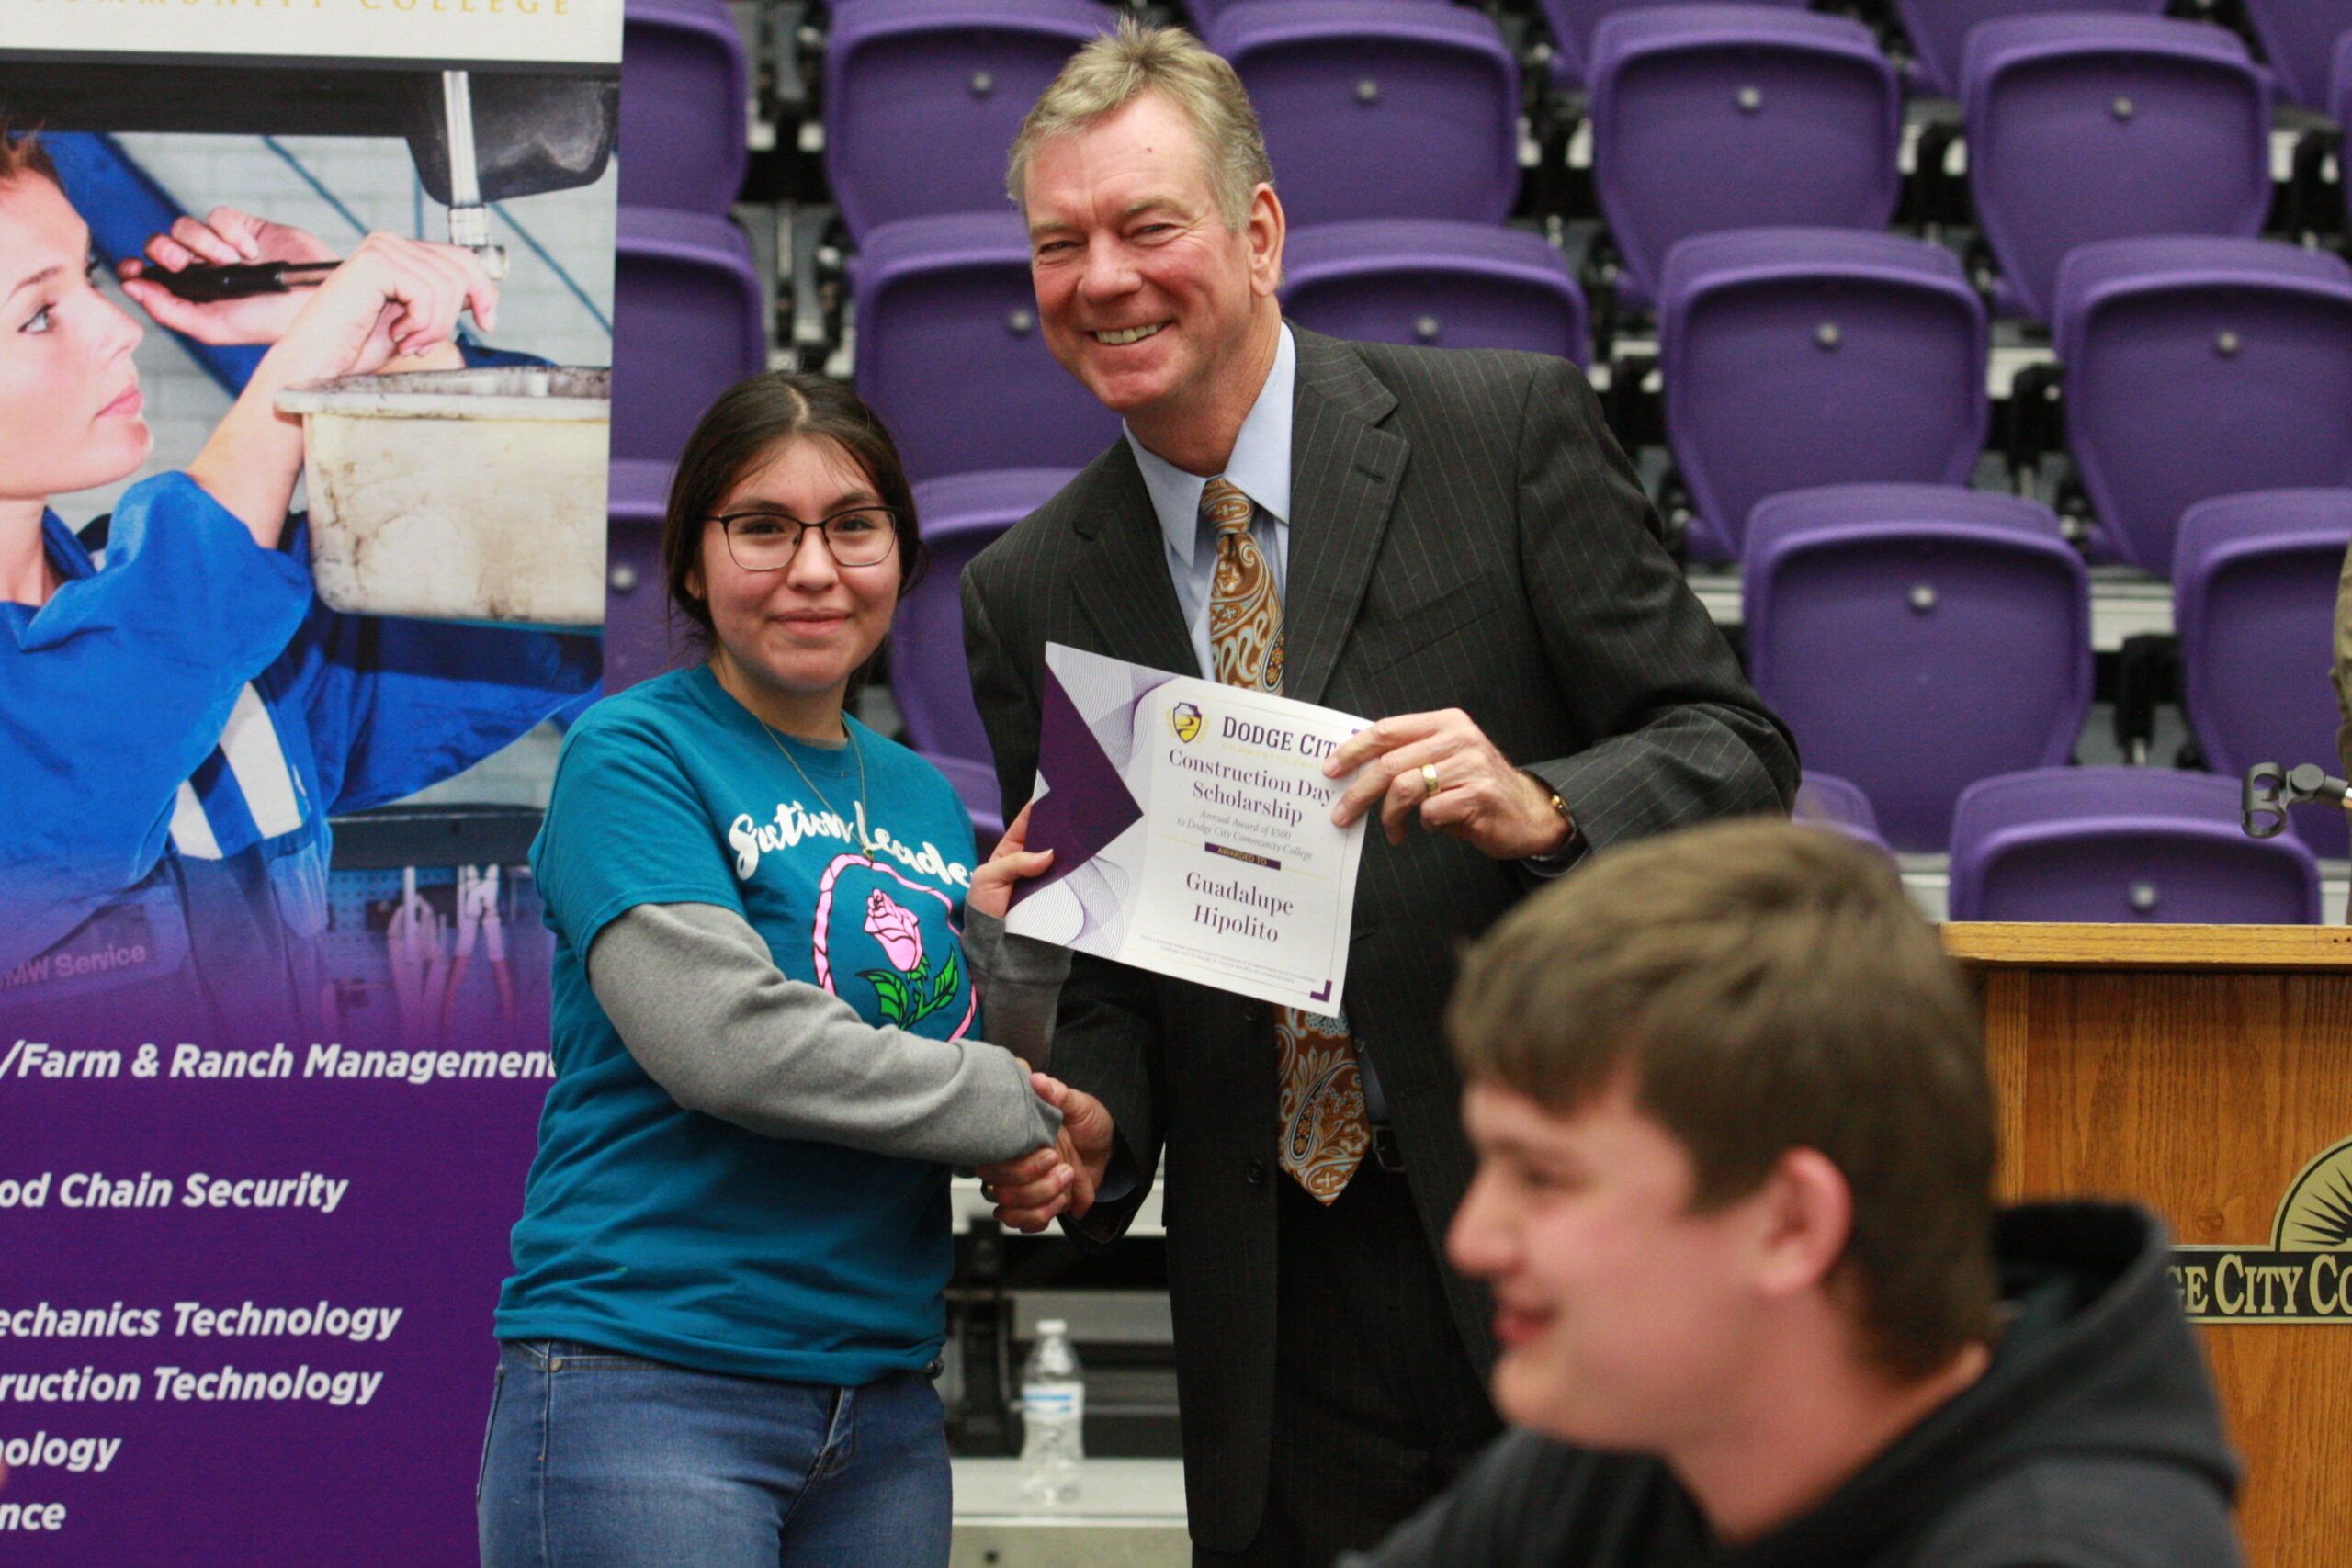 Dr. Harold Nolte, president presenting scholarship to a high school student Guadalupe Hipolito during construction day